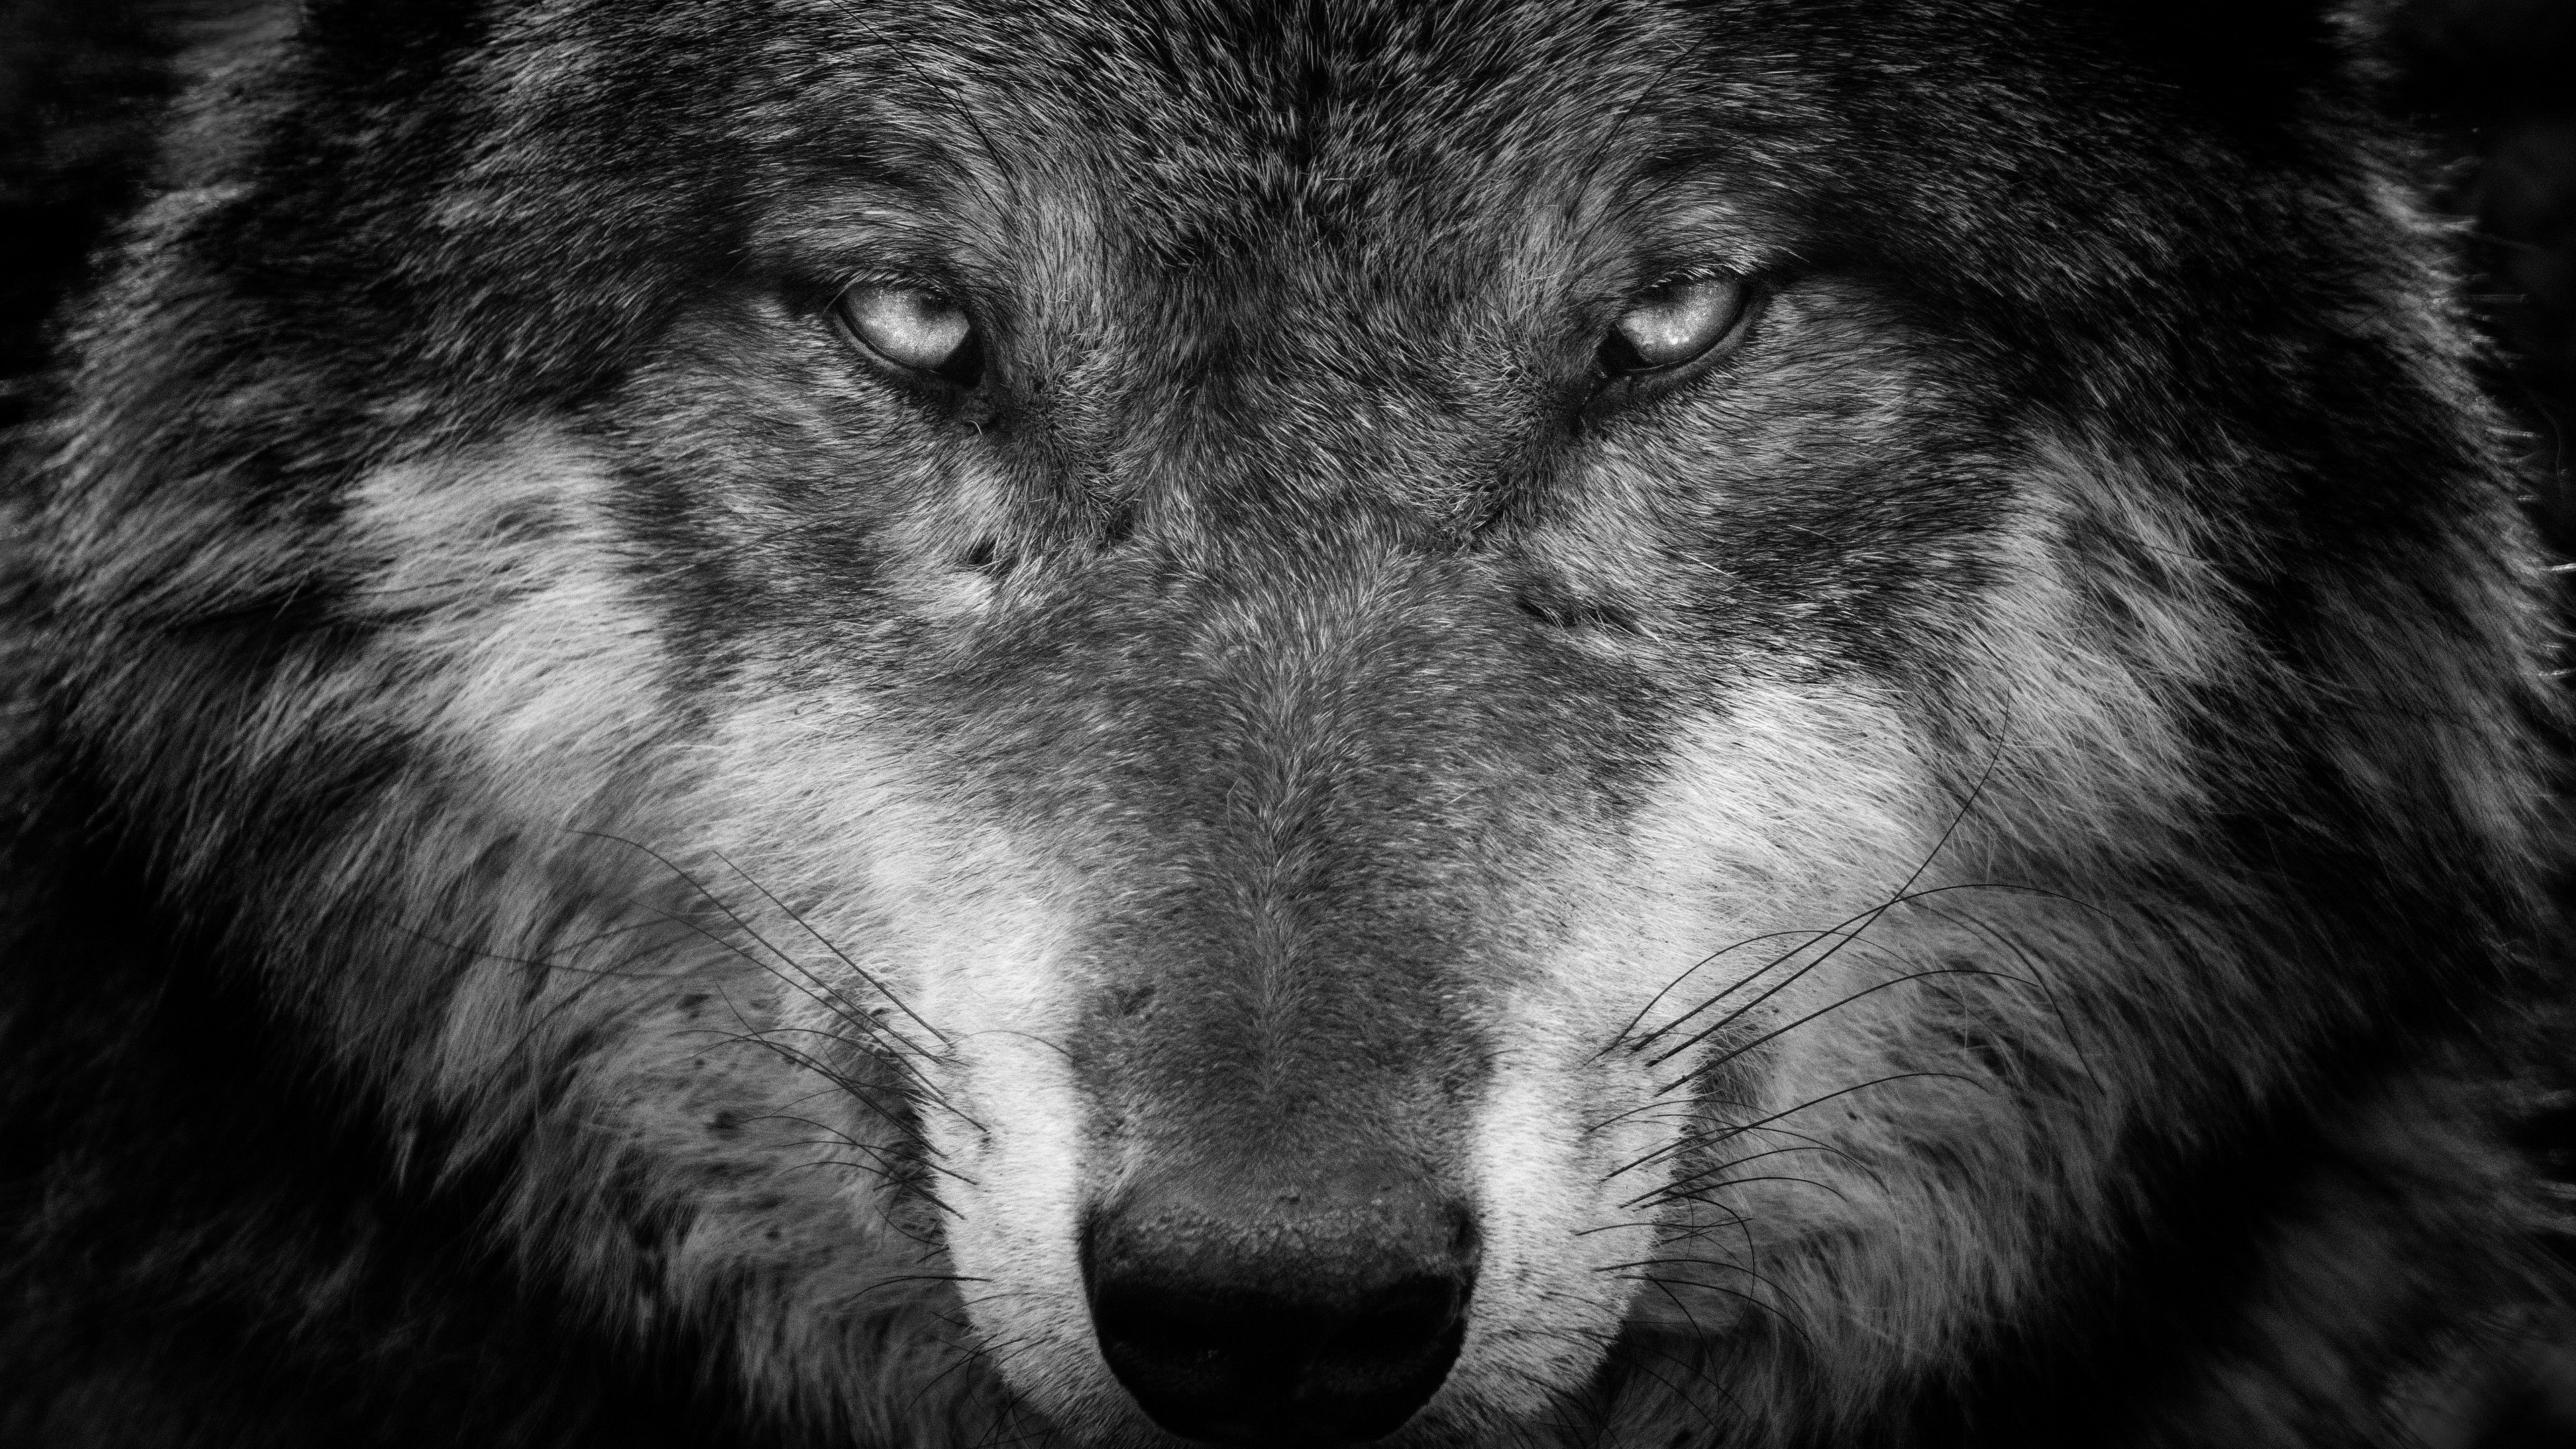 Wolf Face Wallpapers Top Free Wolf Face Backgrounds Wallpaperaccess